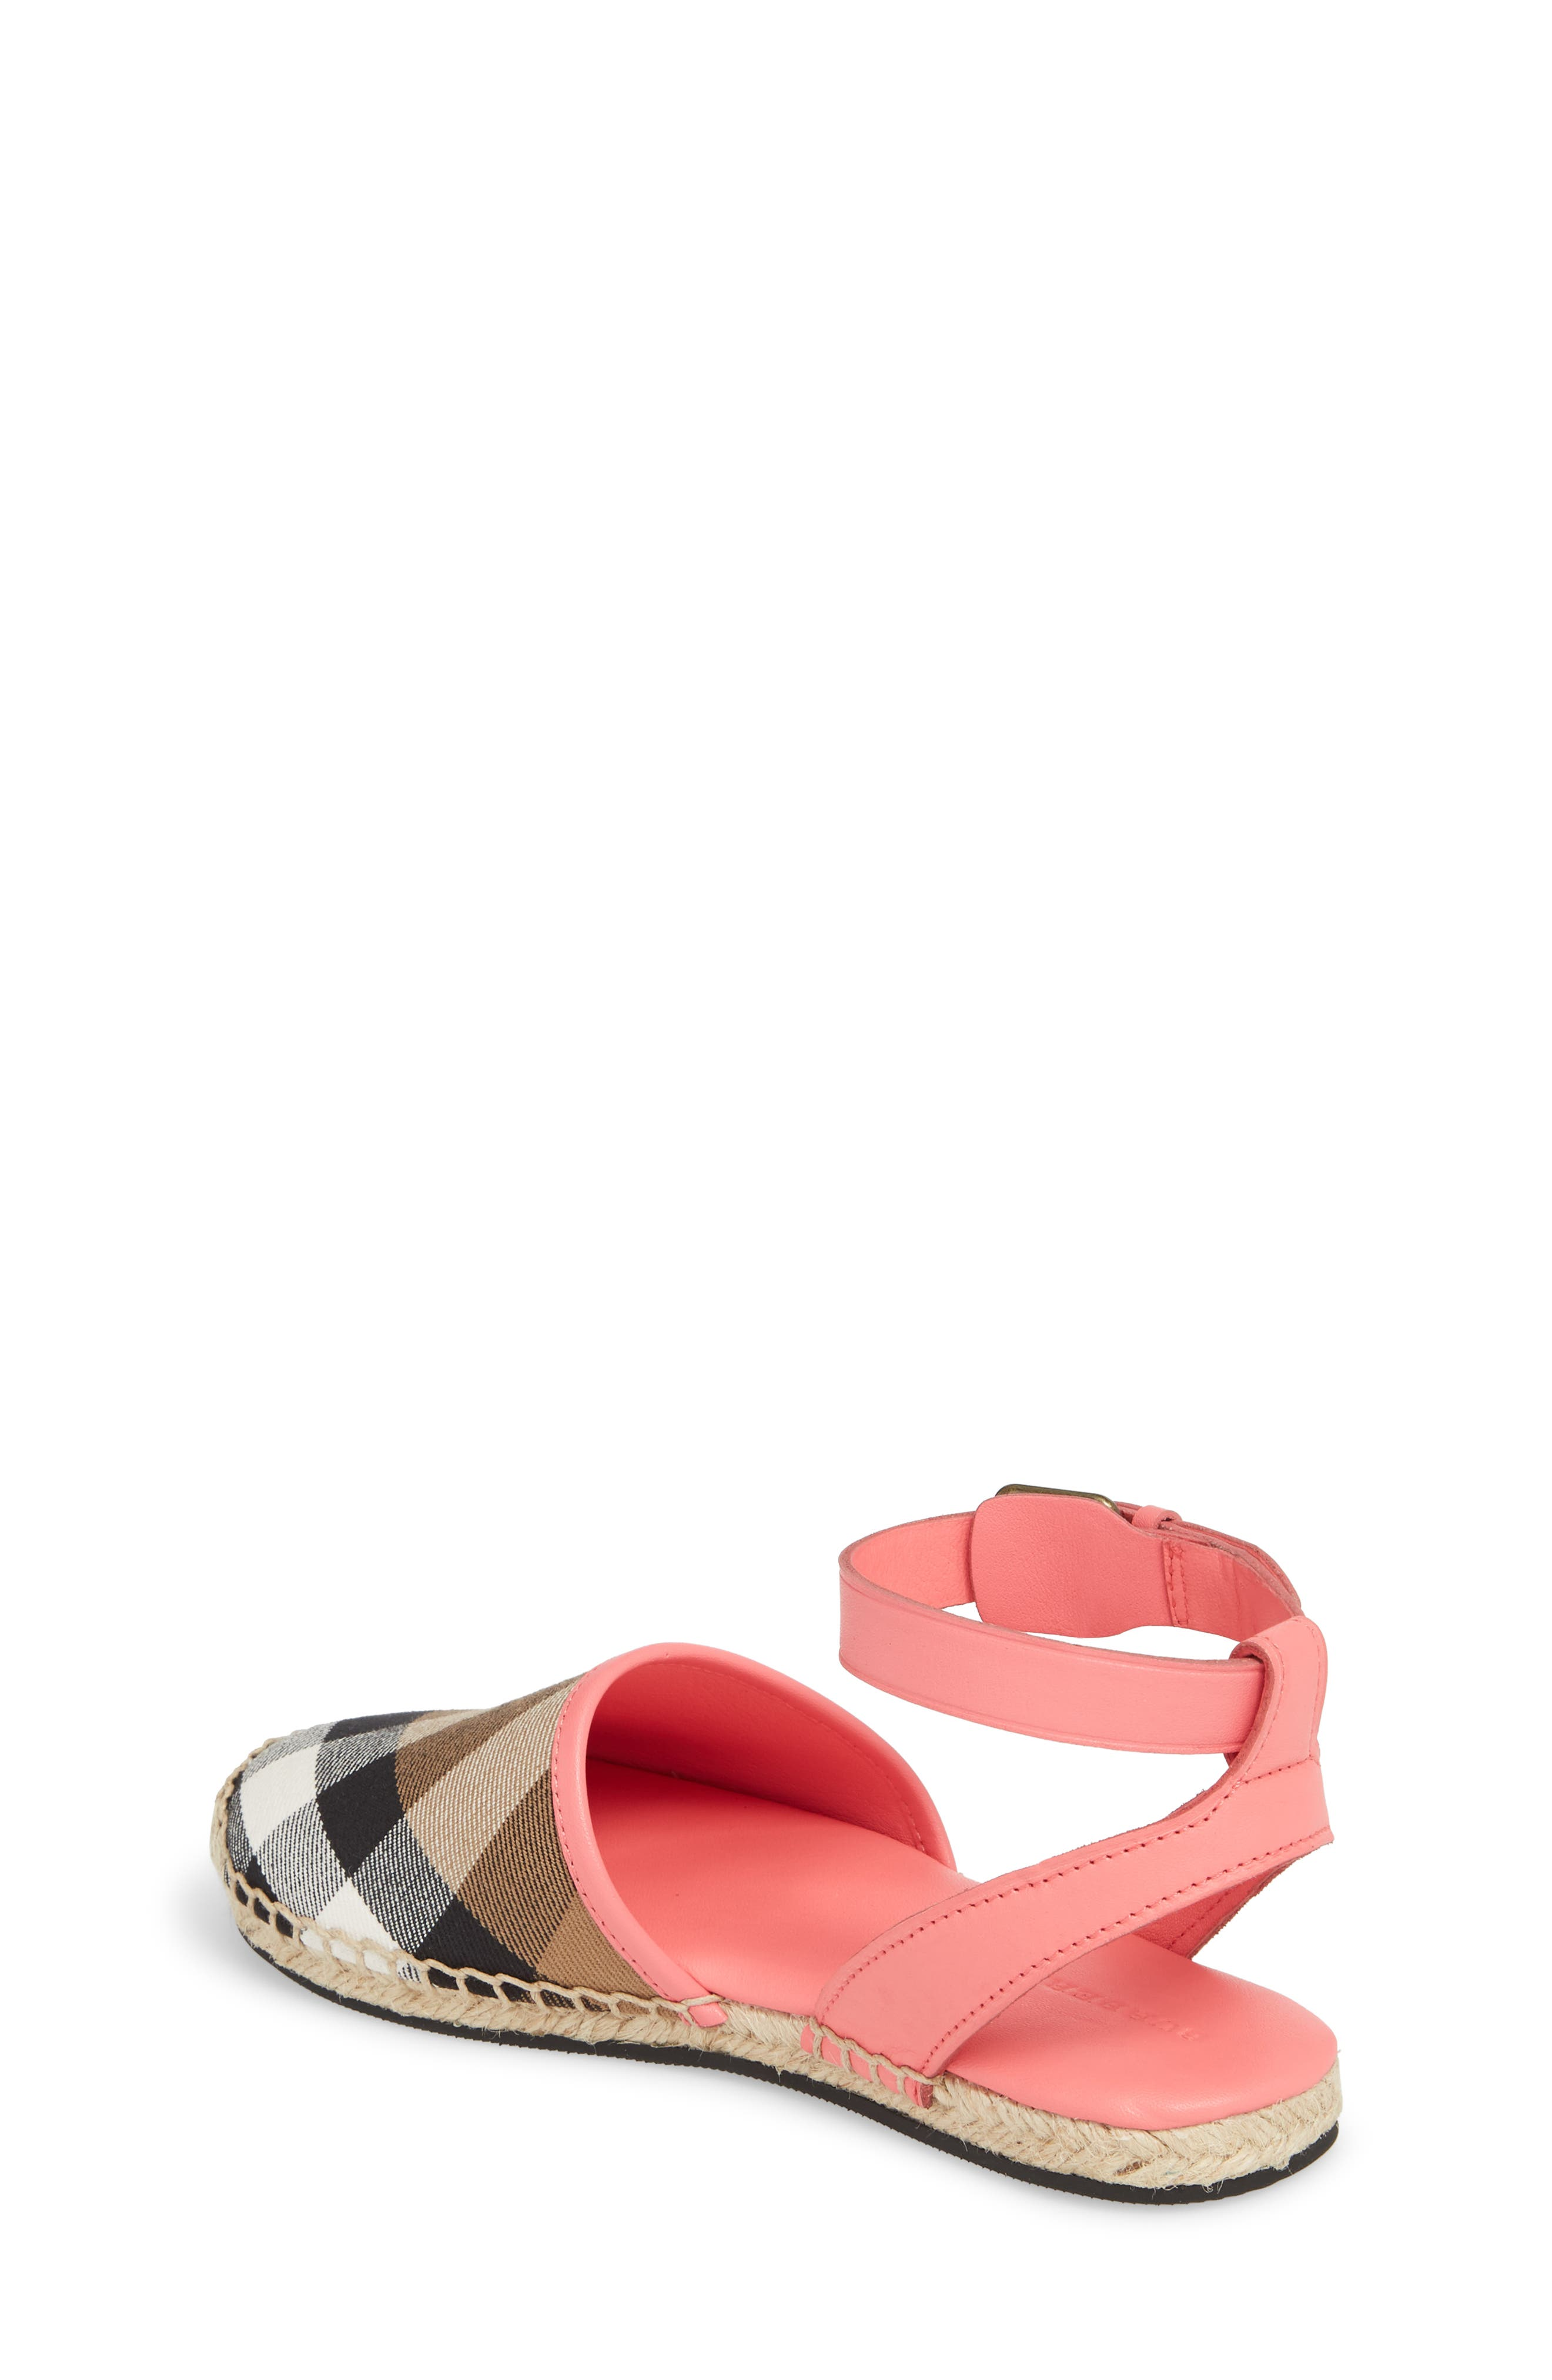 New Perth Espadrille Sandal,                             Alternate thumbnail 2, color,                             Bright Peony Rose